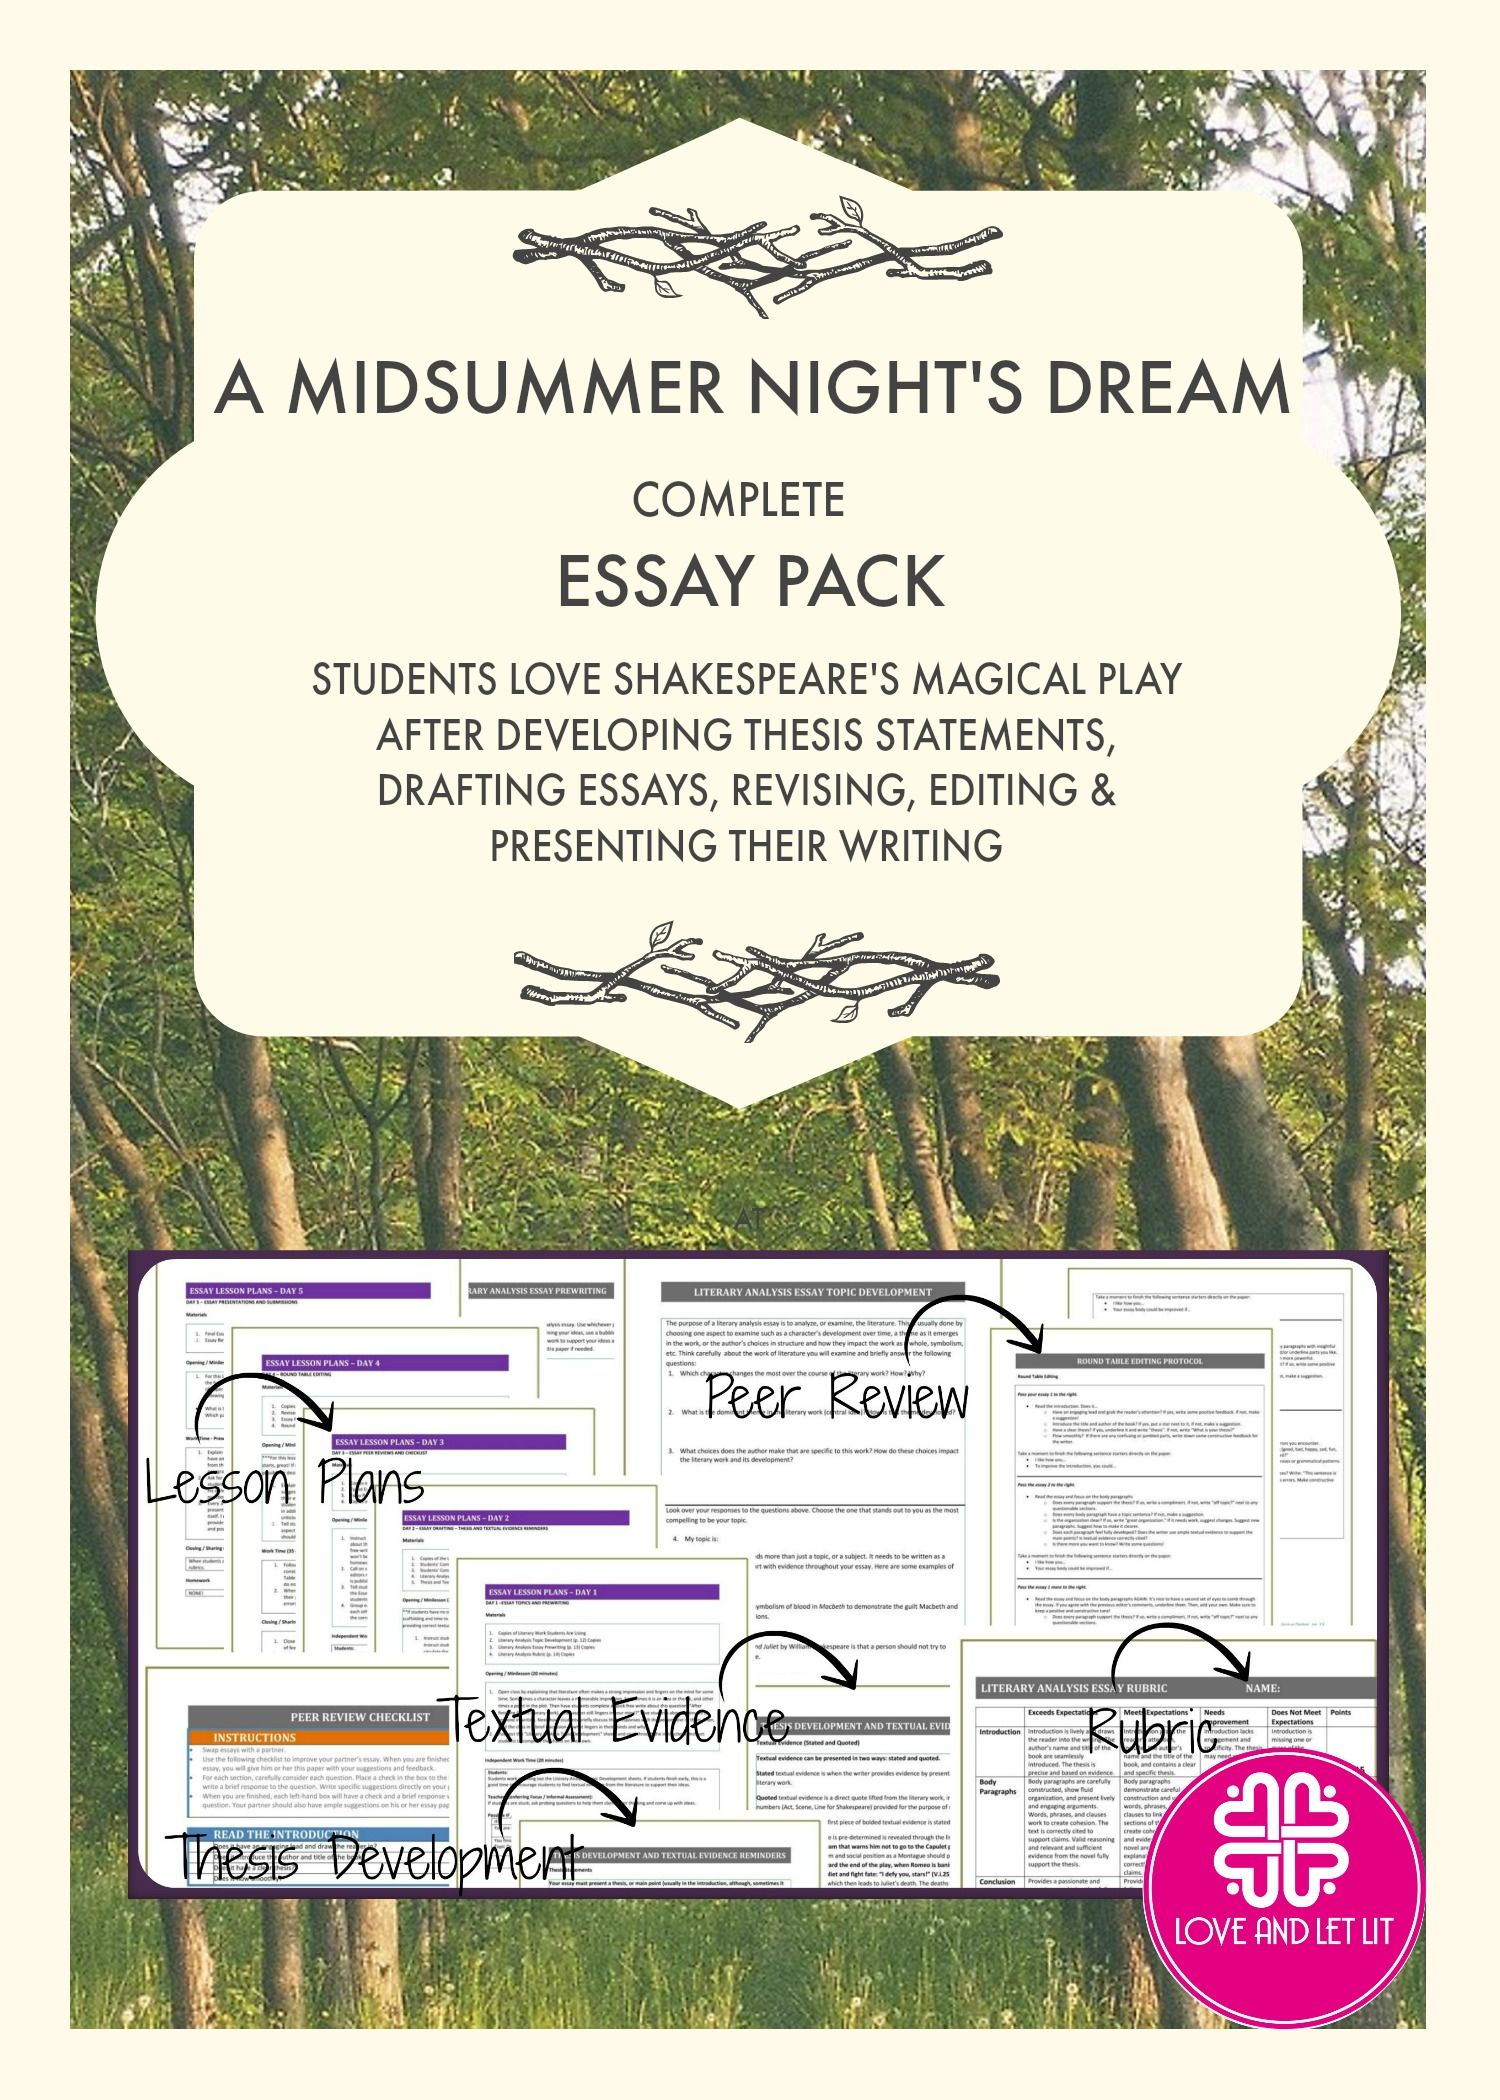 a midsummer night s dream essay unit for literary analysis writing  a midsummer night s dream essay unit for literary analysis writing